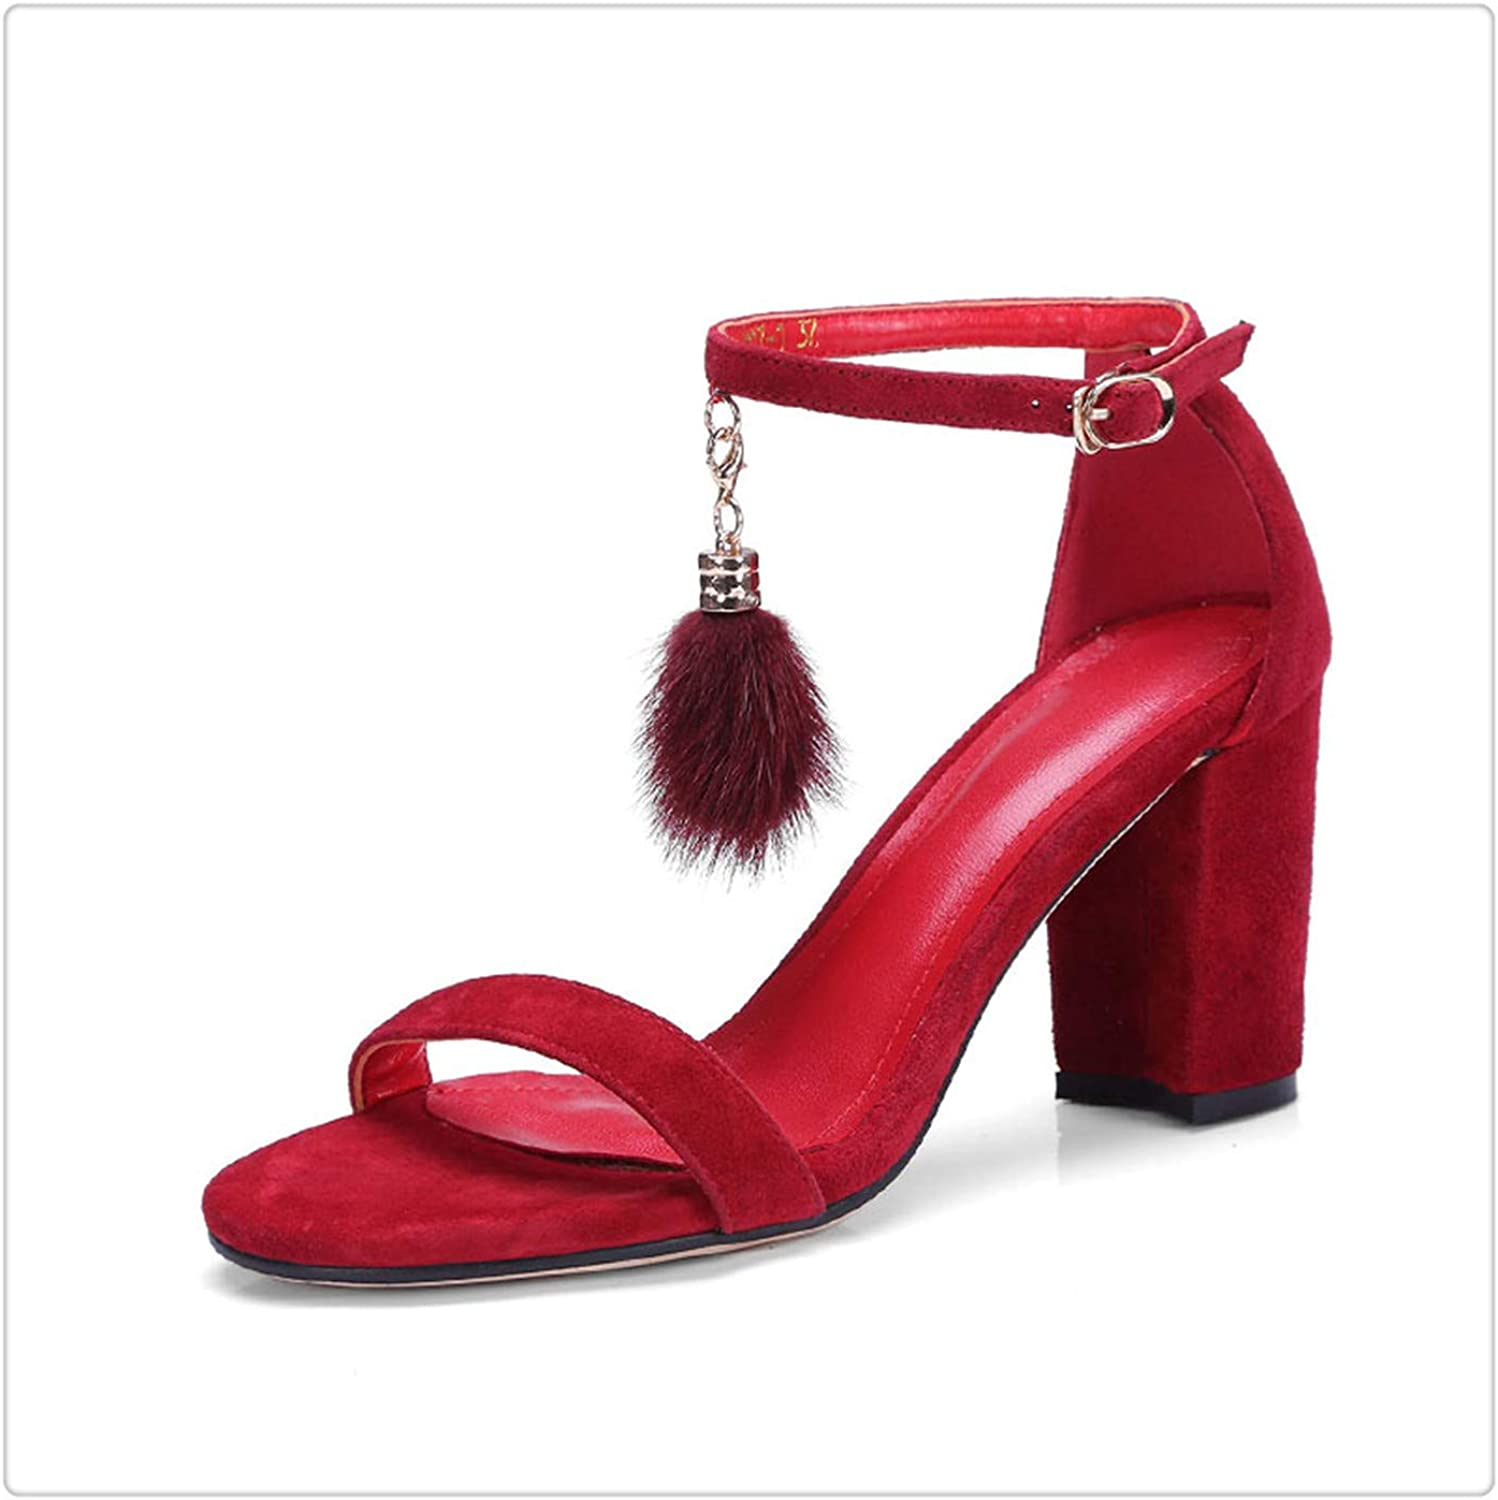 NNHLPO& Summer High Heels Sandals Square Heels Kid Suede Metal Decoration Open Toe Fur